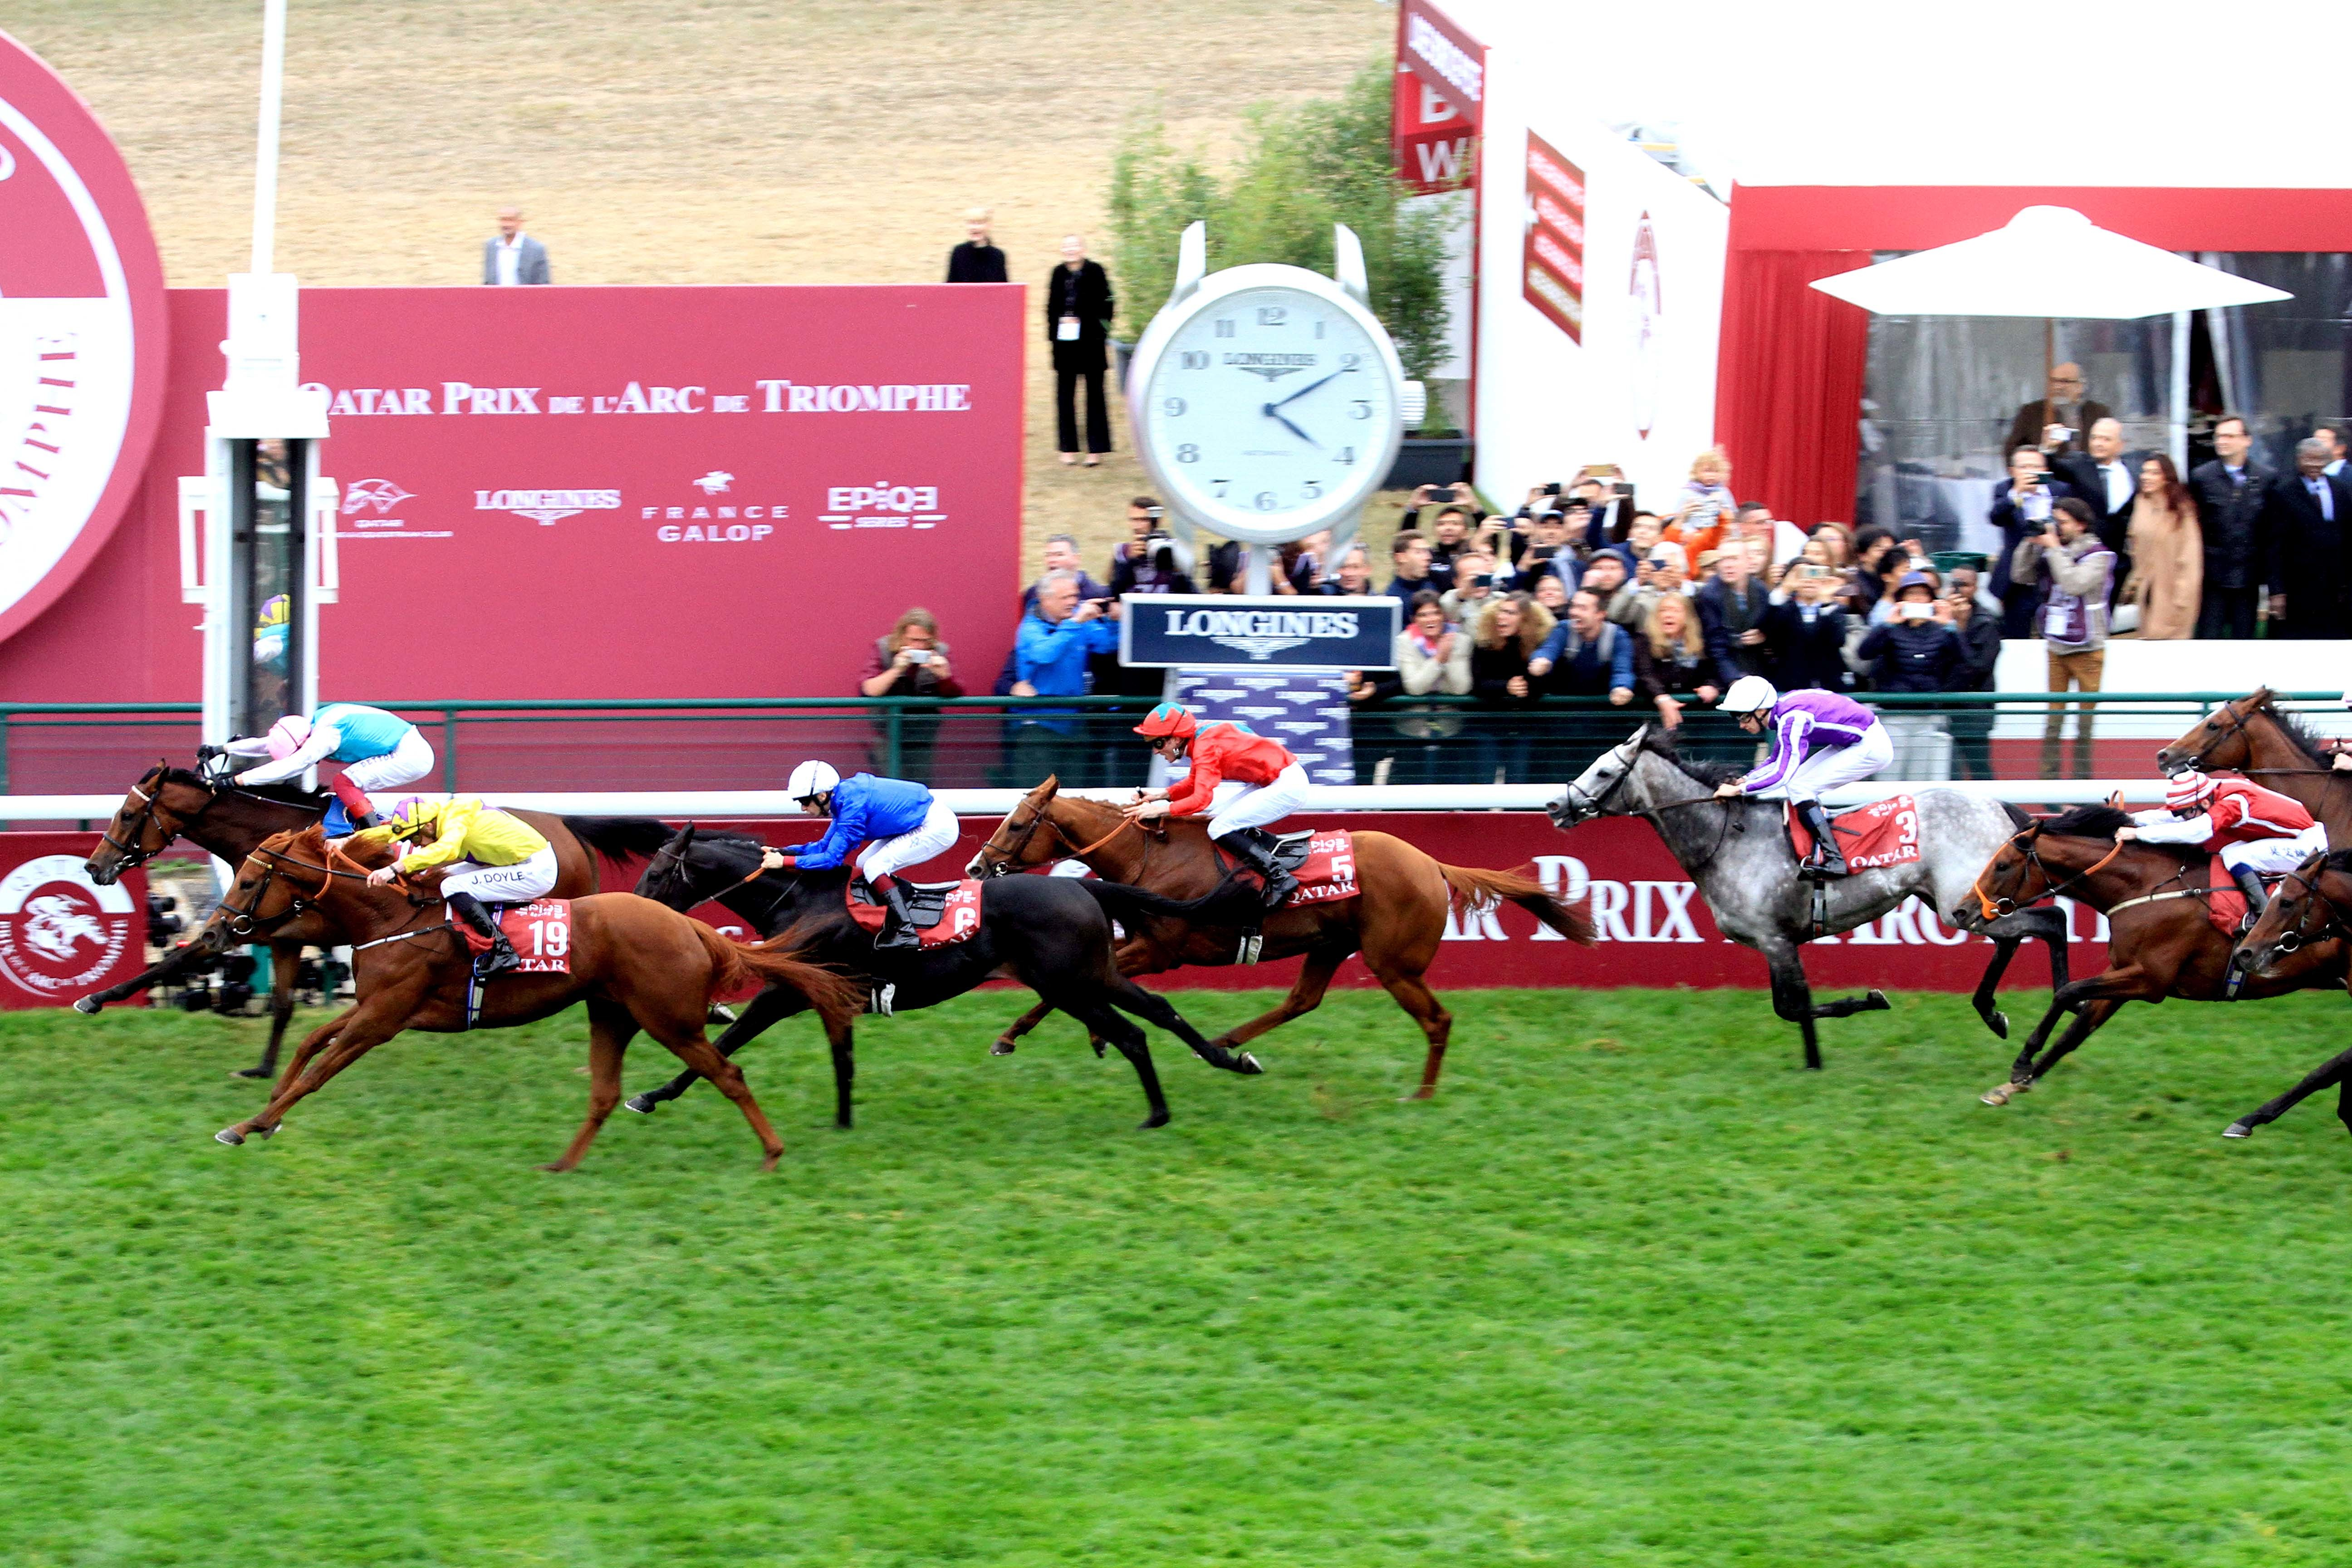 Les handicapeurs de France Galop expliquent le rating de l'Arc